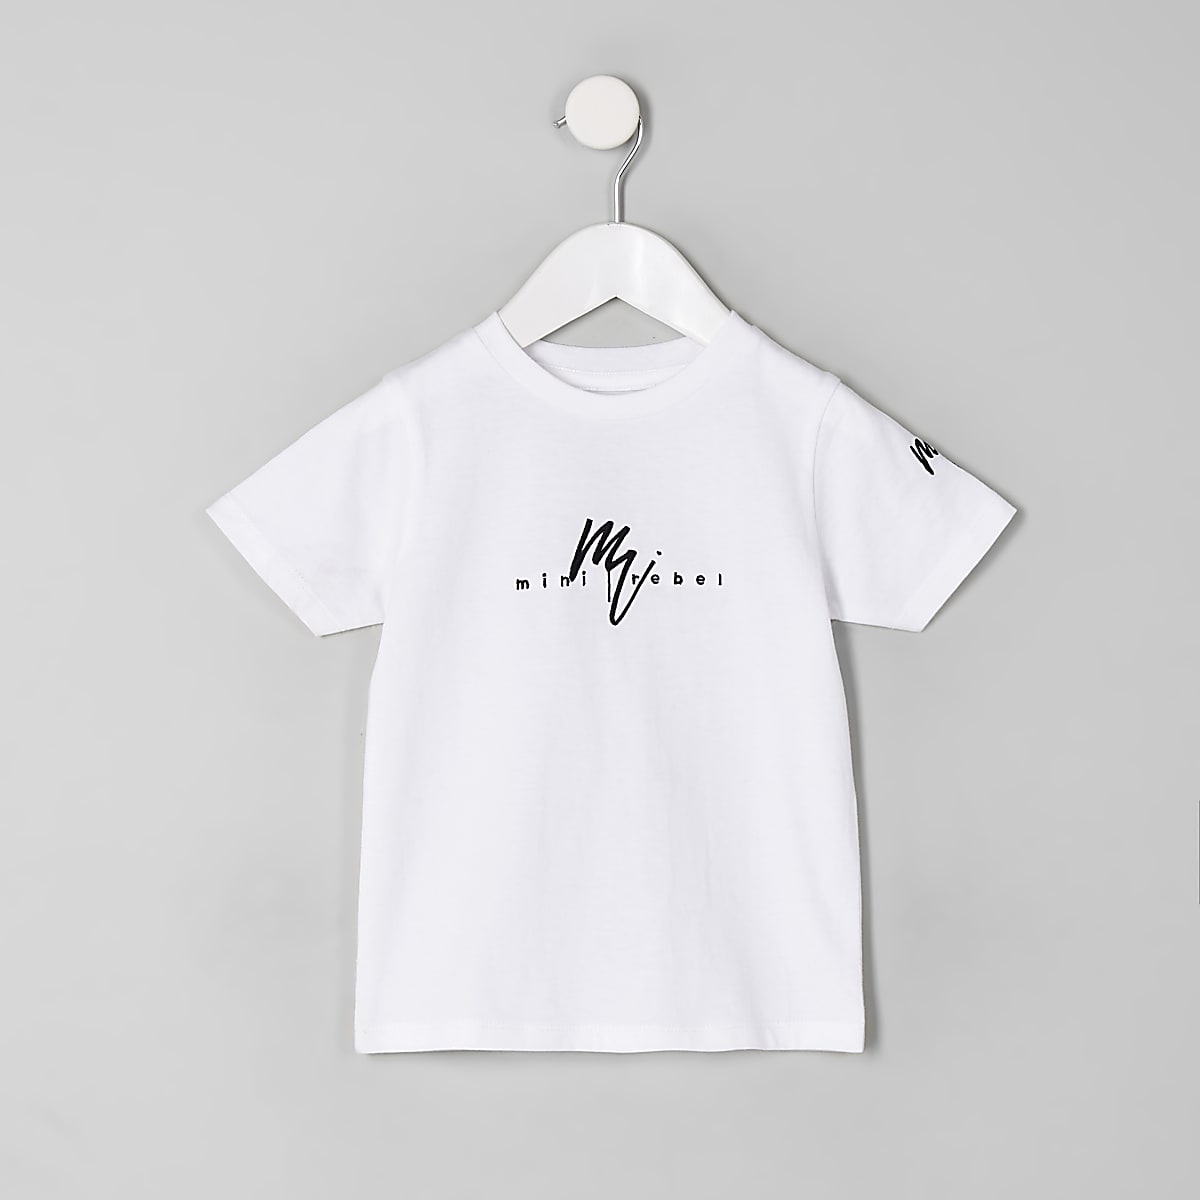 Mini boys white 'Mini rebel' T-shirt